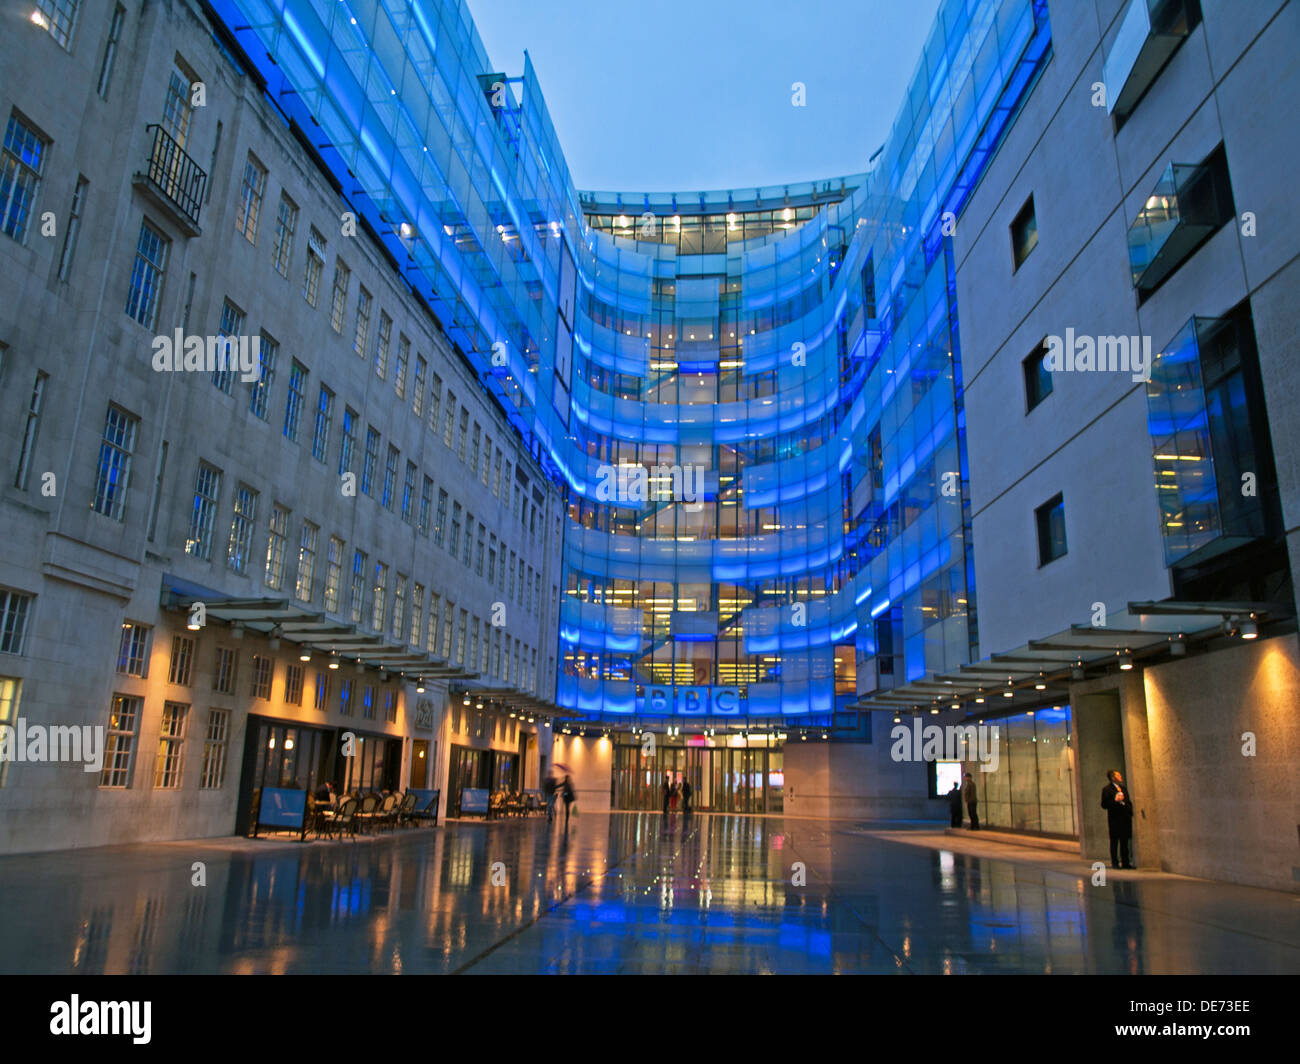 Illuminated view of the BBC Broadcasting House East Wing, Langham Place, City of Westminster, London, England, United Stock Photo